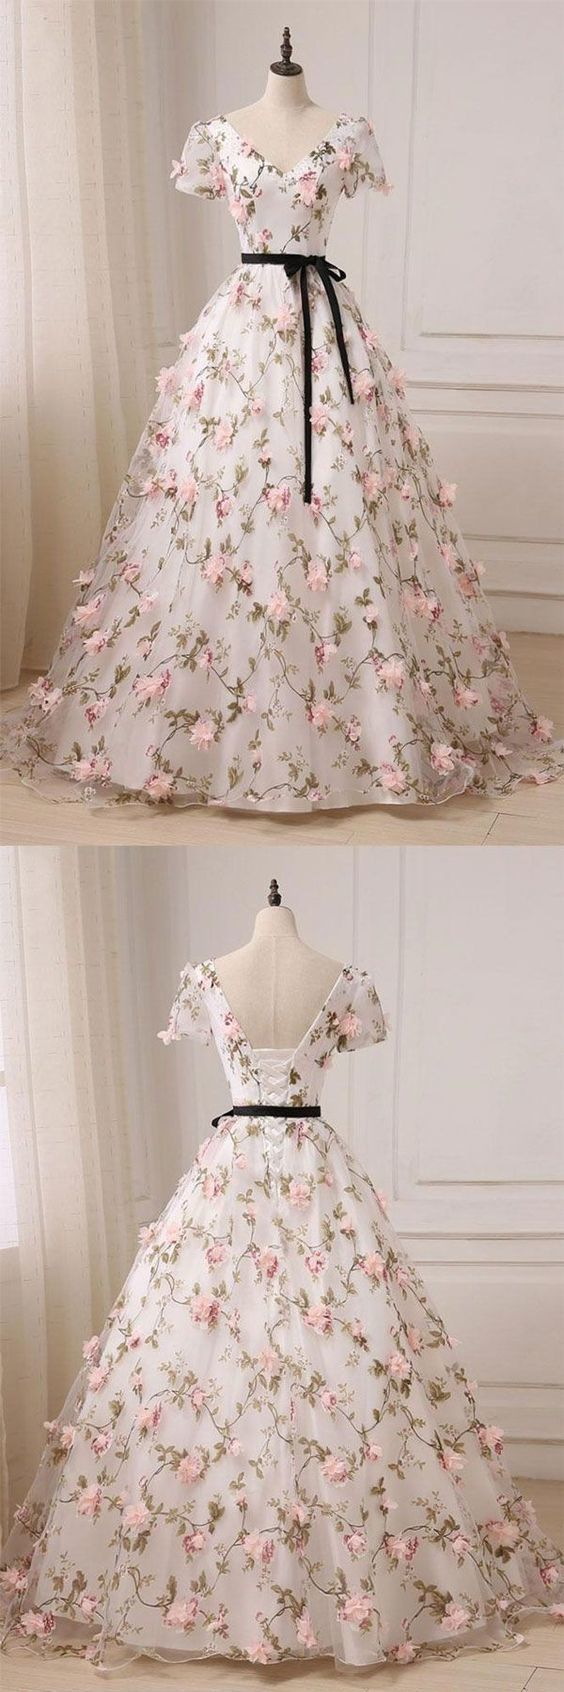 Floral prom dressshort sleeve prom dresstulle evening dress